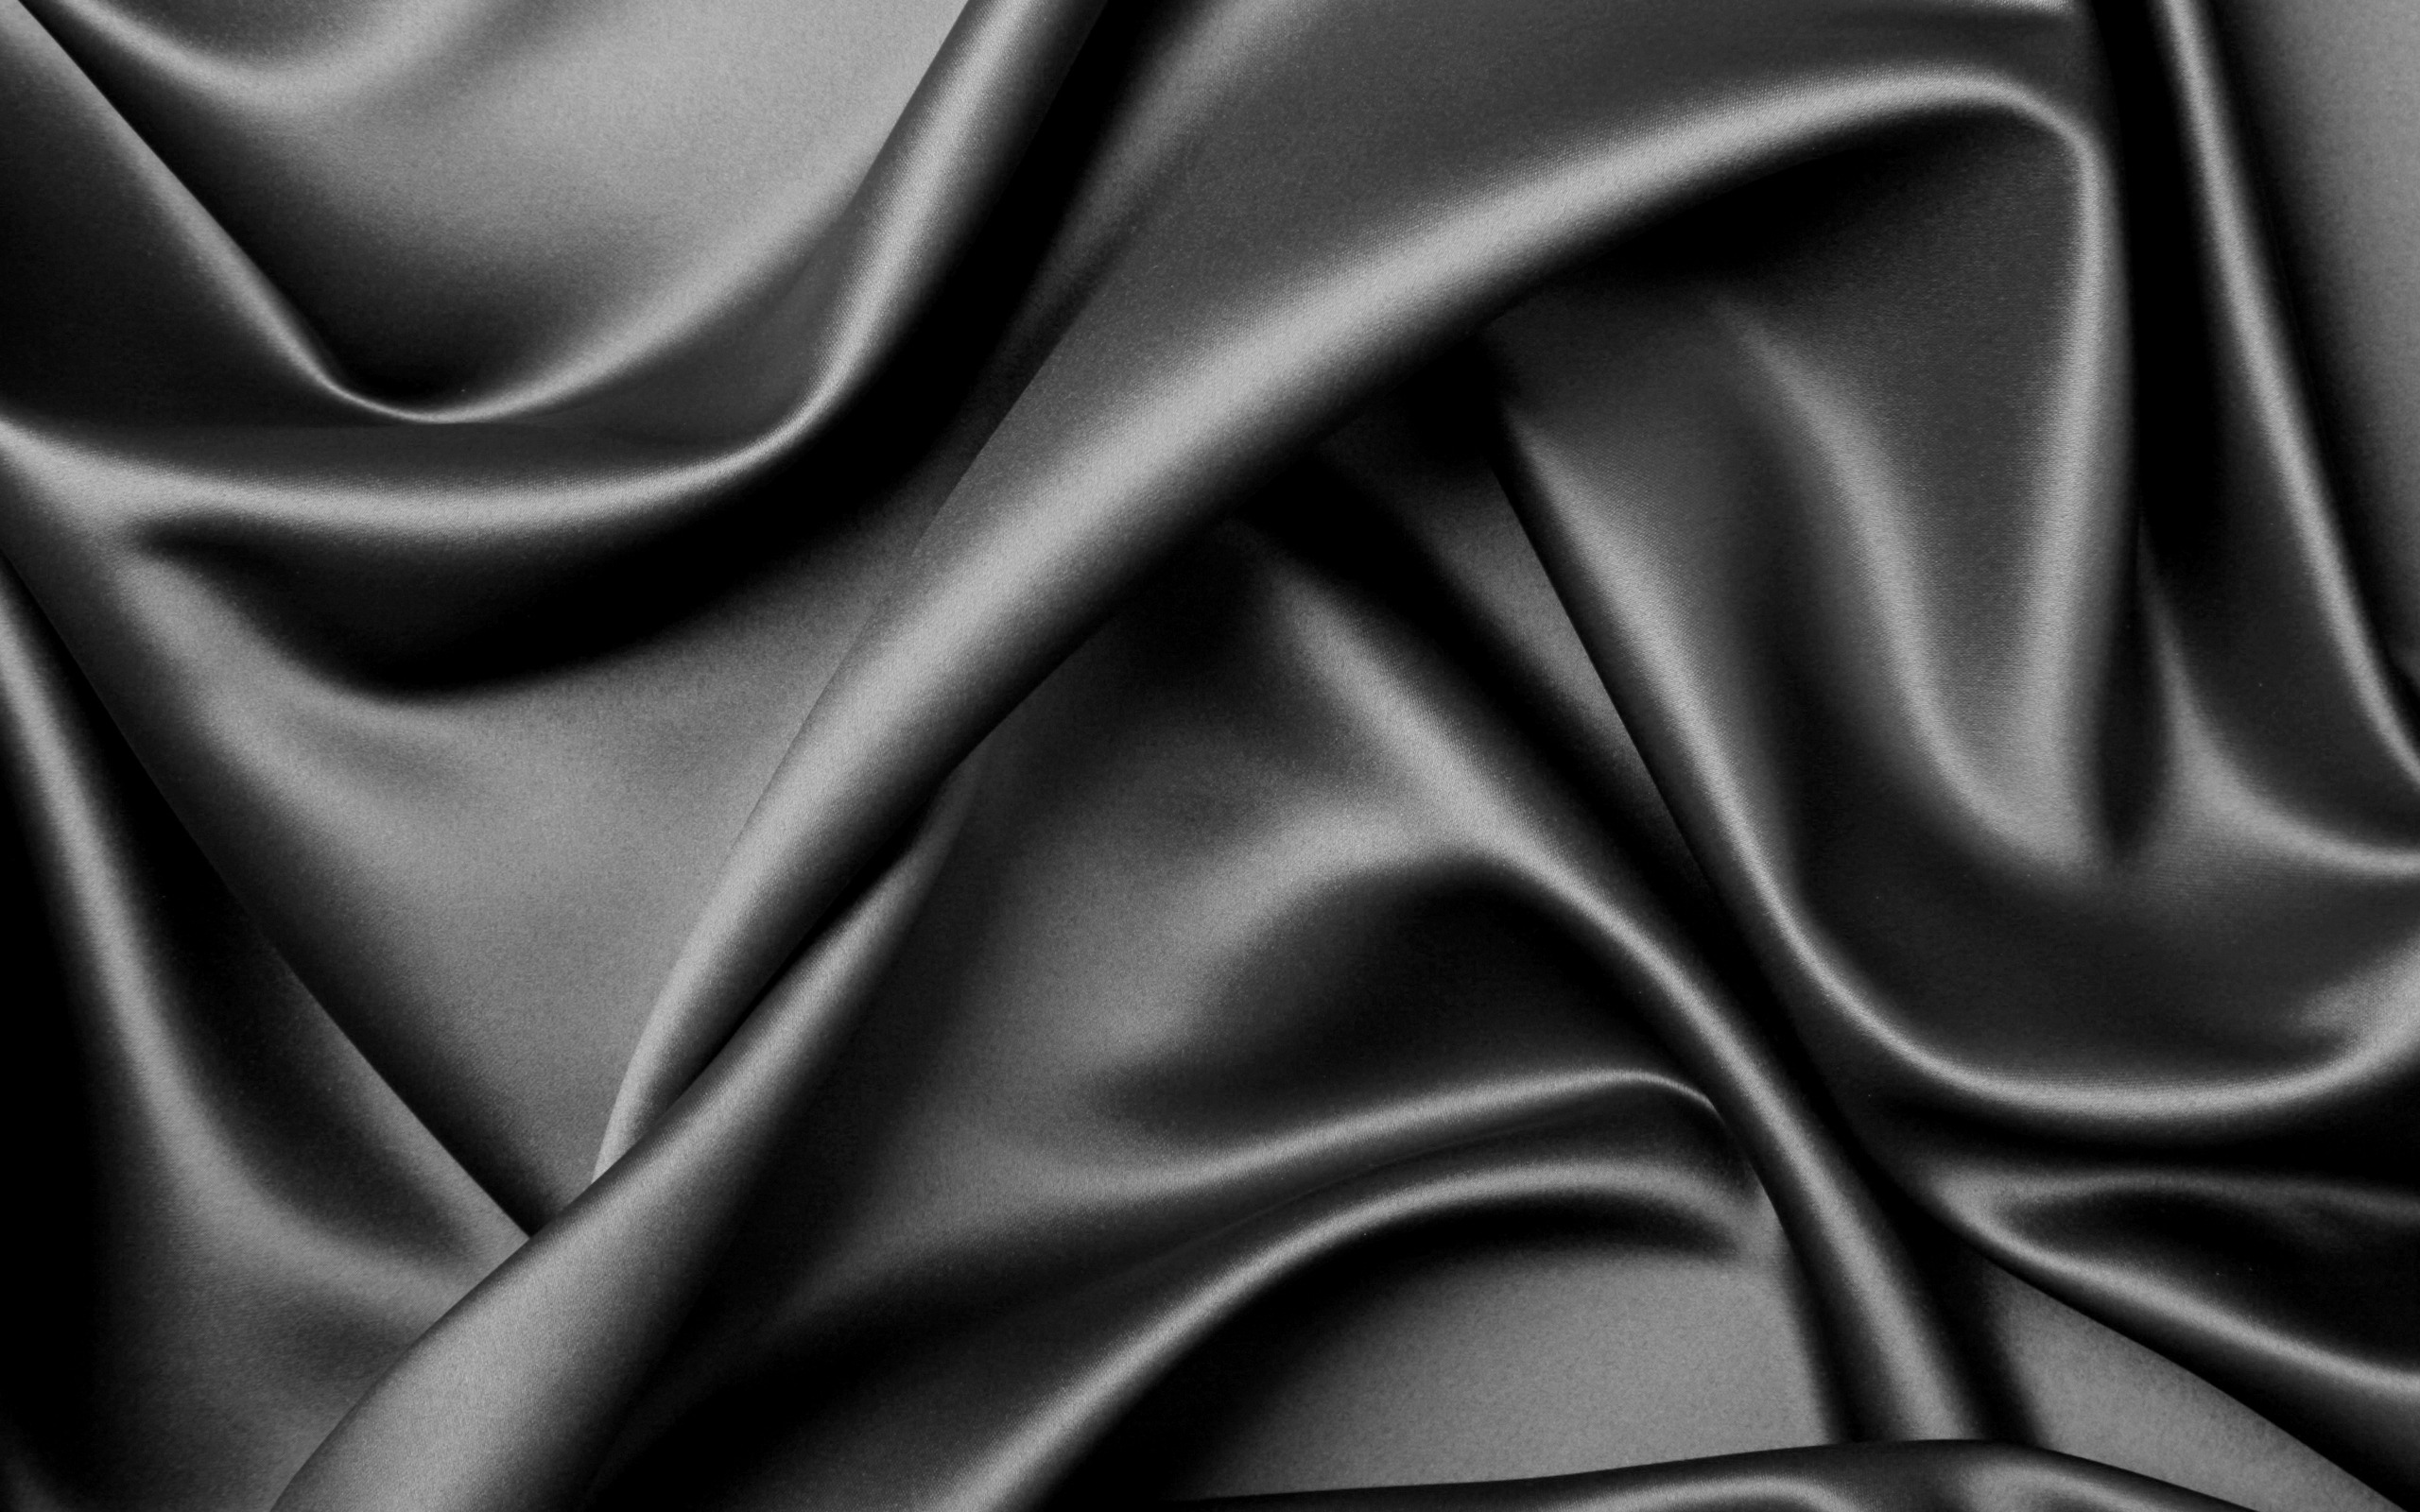 Black Textures Elegant Silk Theme Desktop Wallpaper